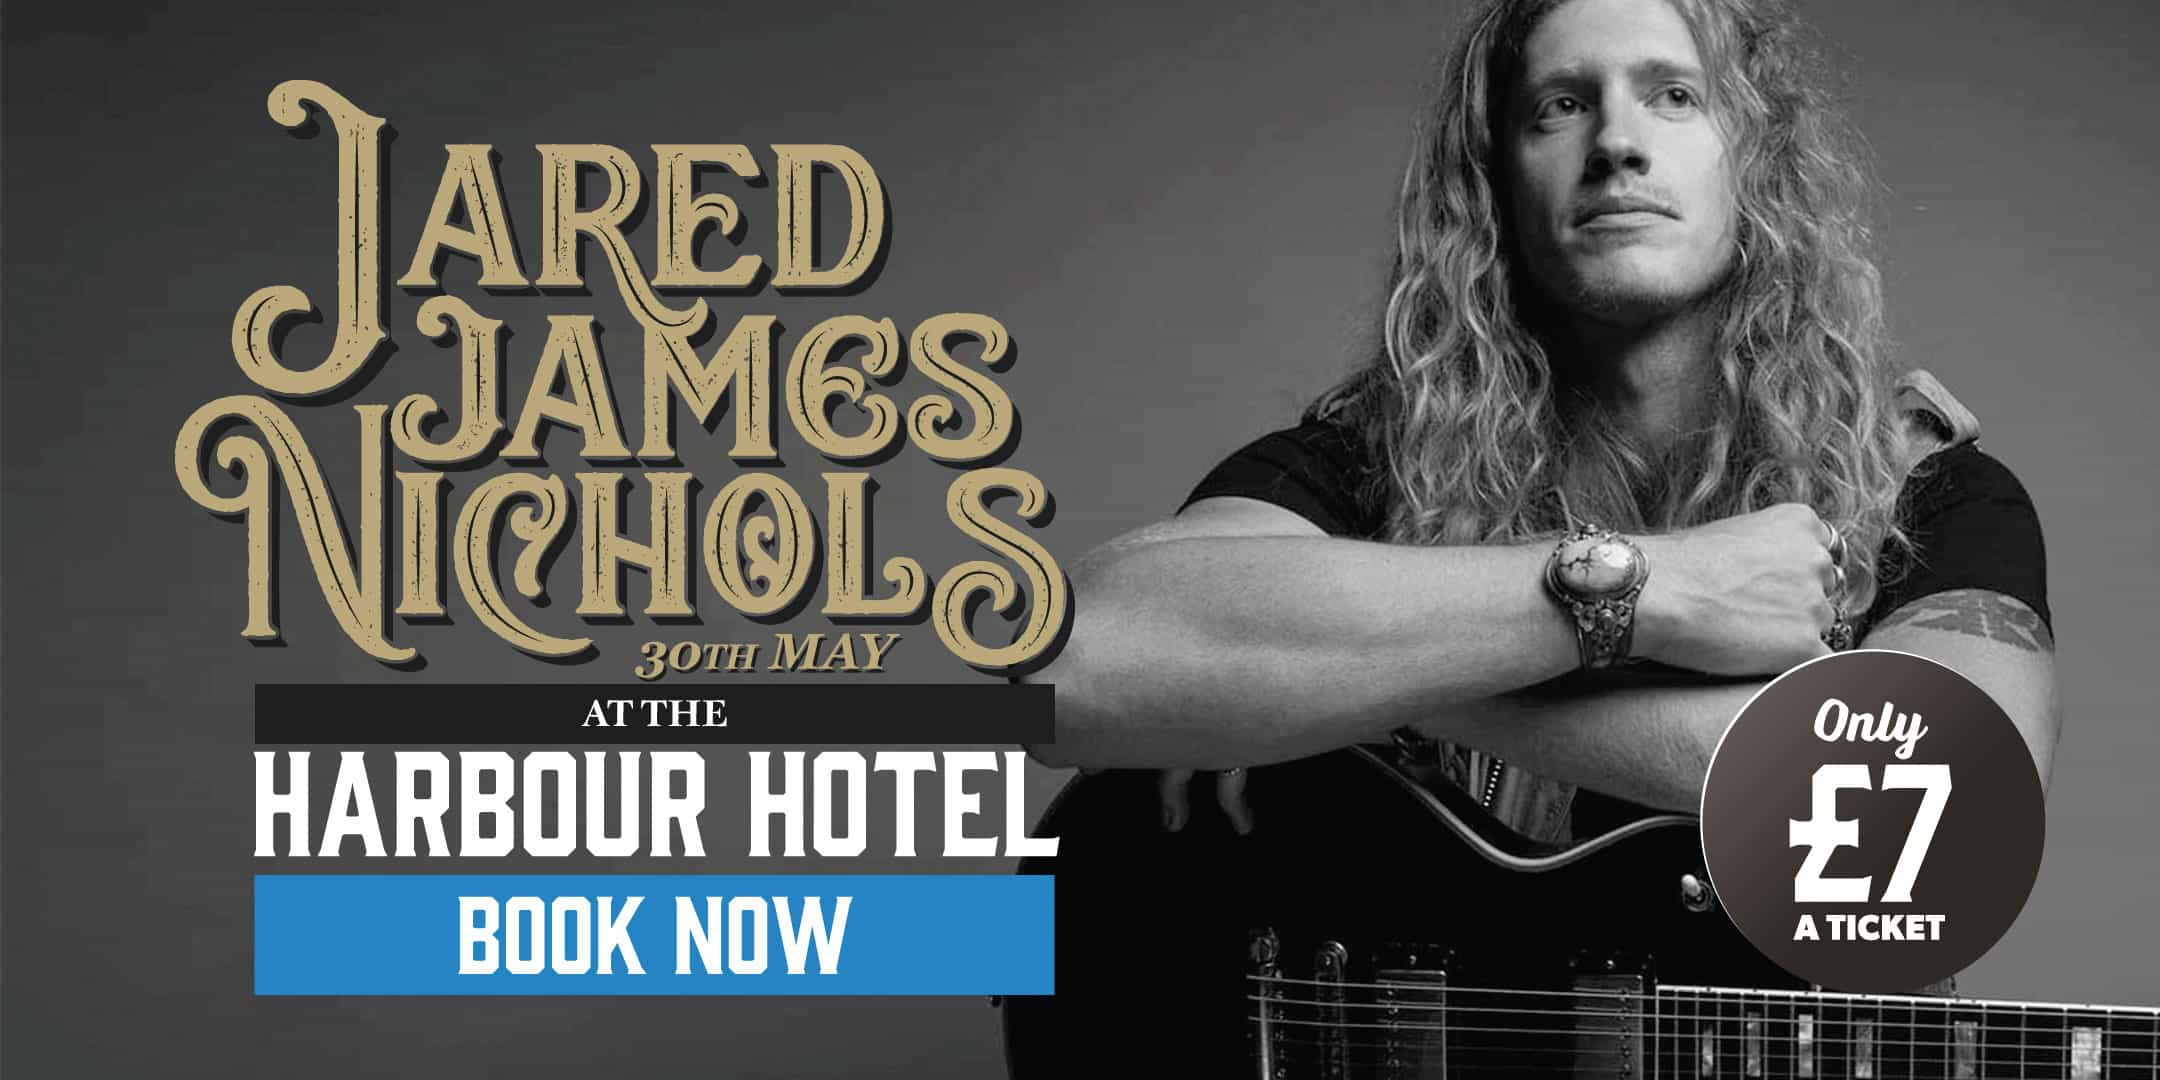 Andertons Music Co. Events - Jared James Nichols at the Harbour Hotel, Guildford